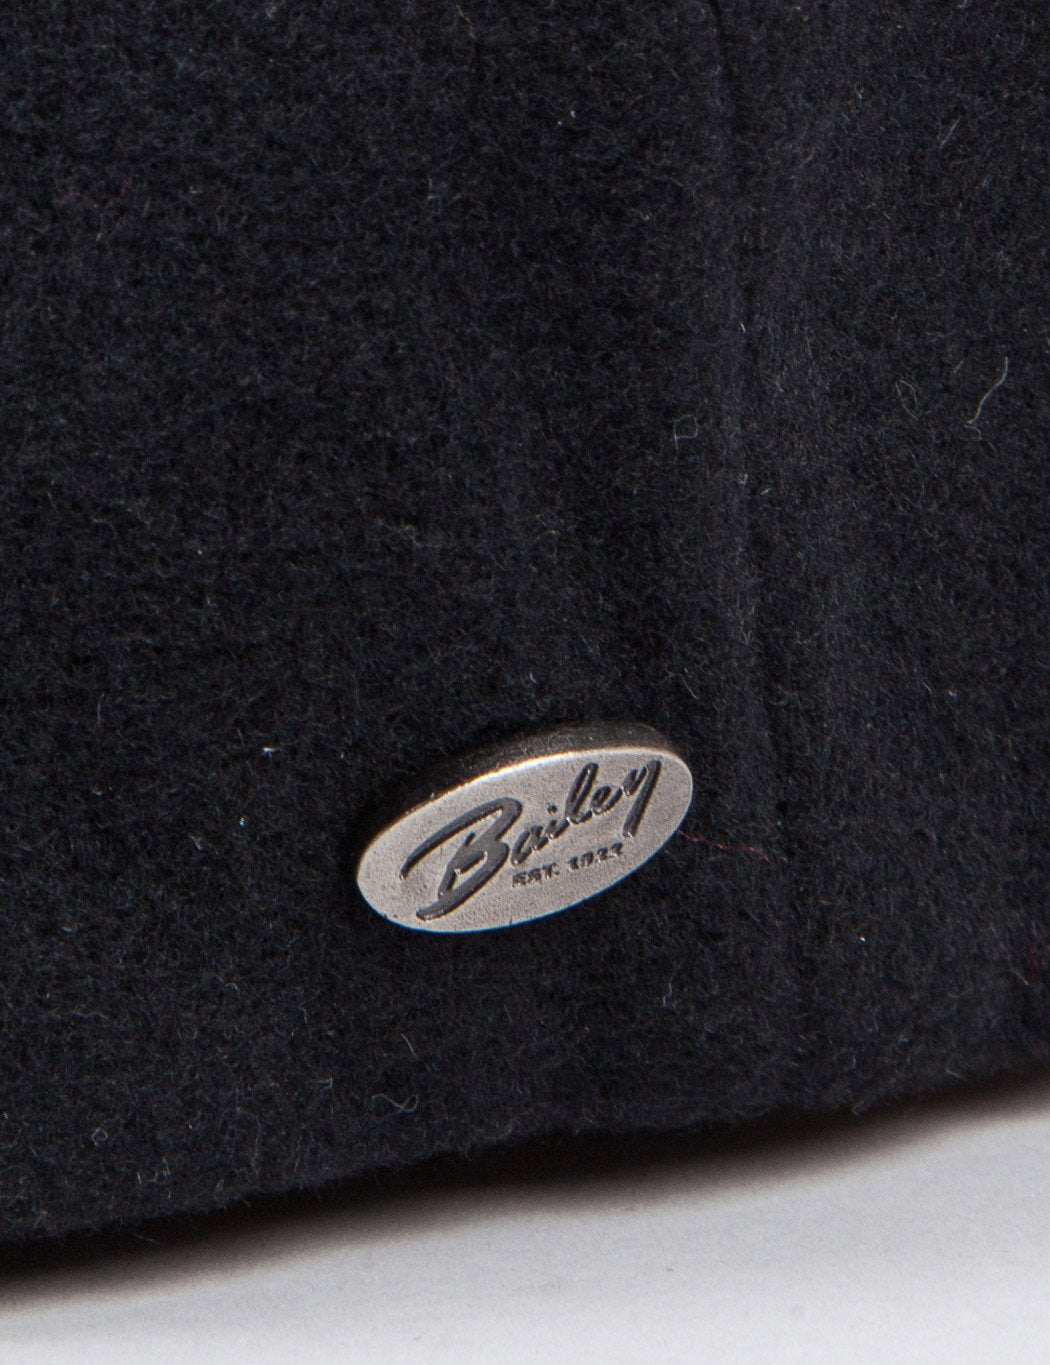 Bailey Galvin Wool Newsboy Cap - Black